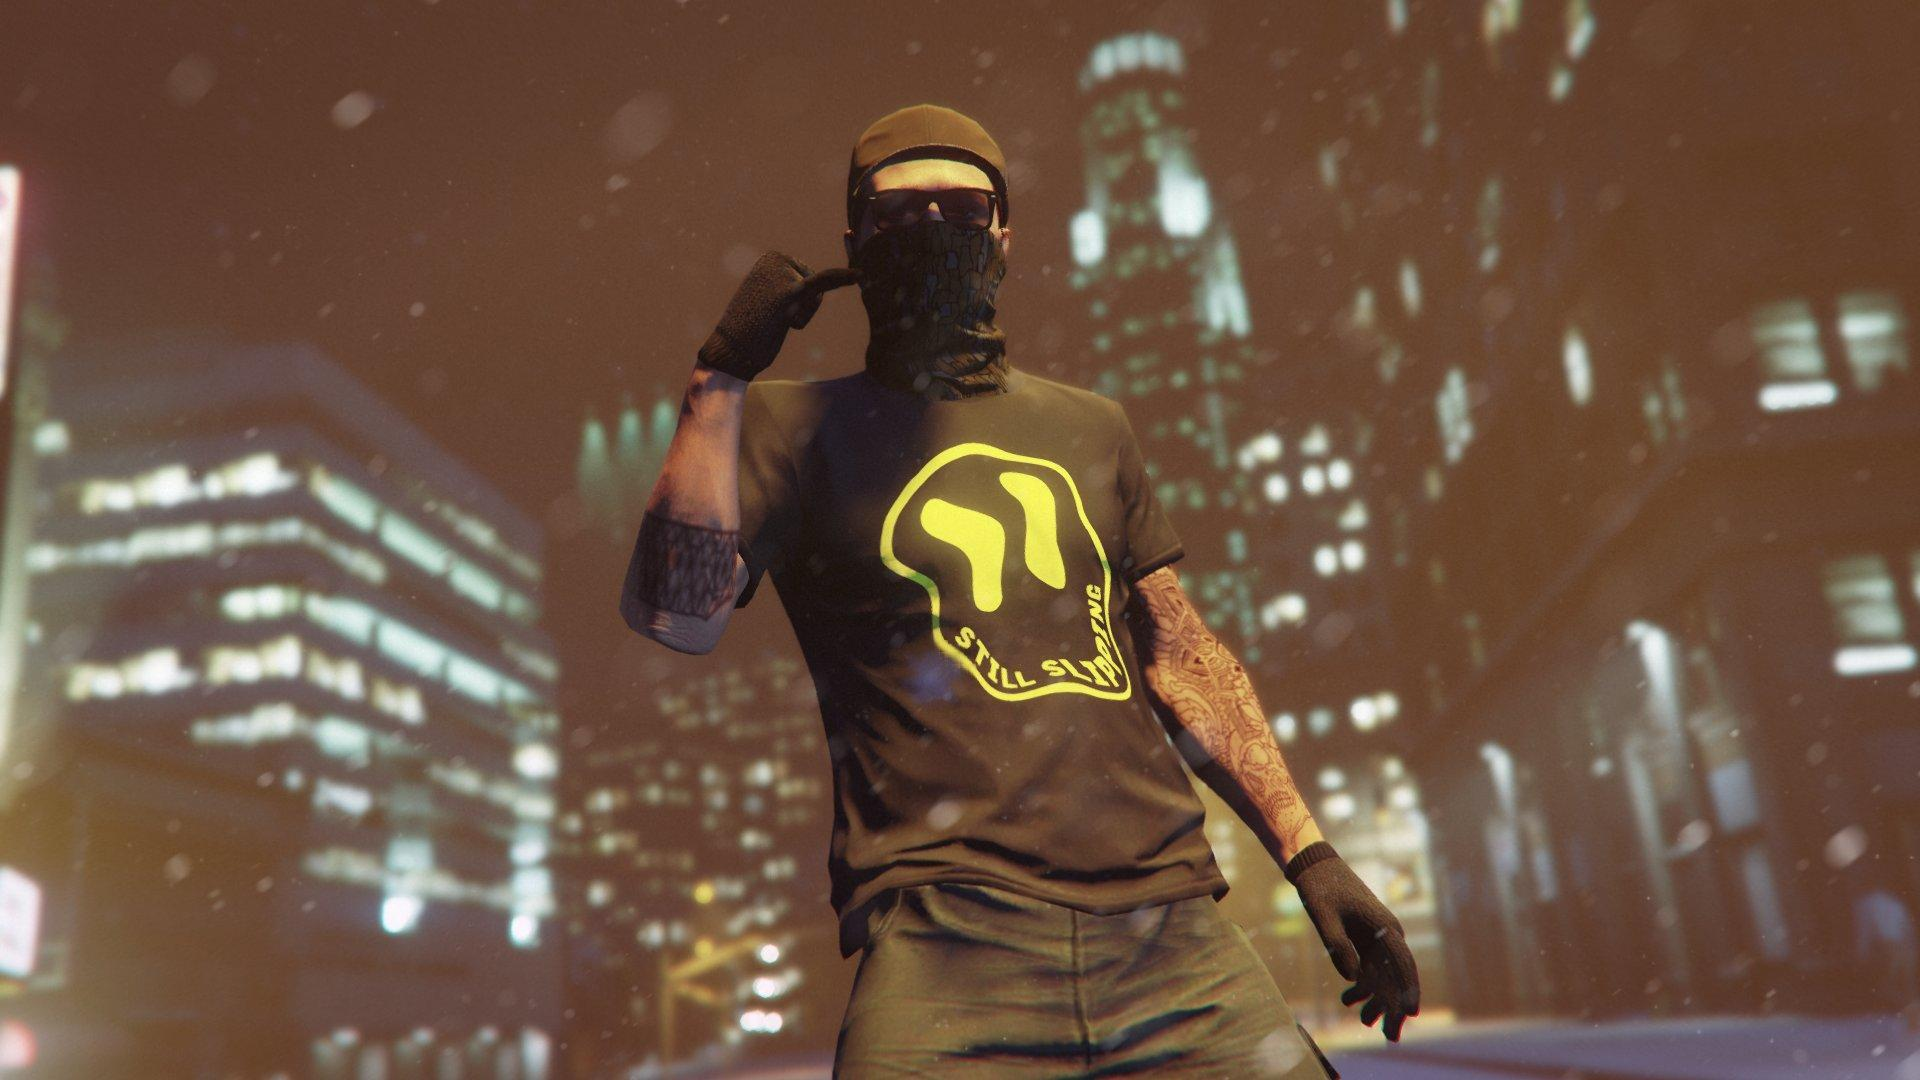 gta online warped still slipping tee